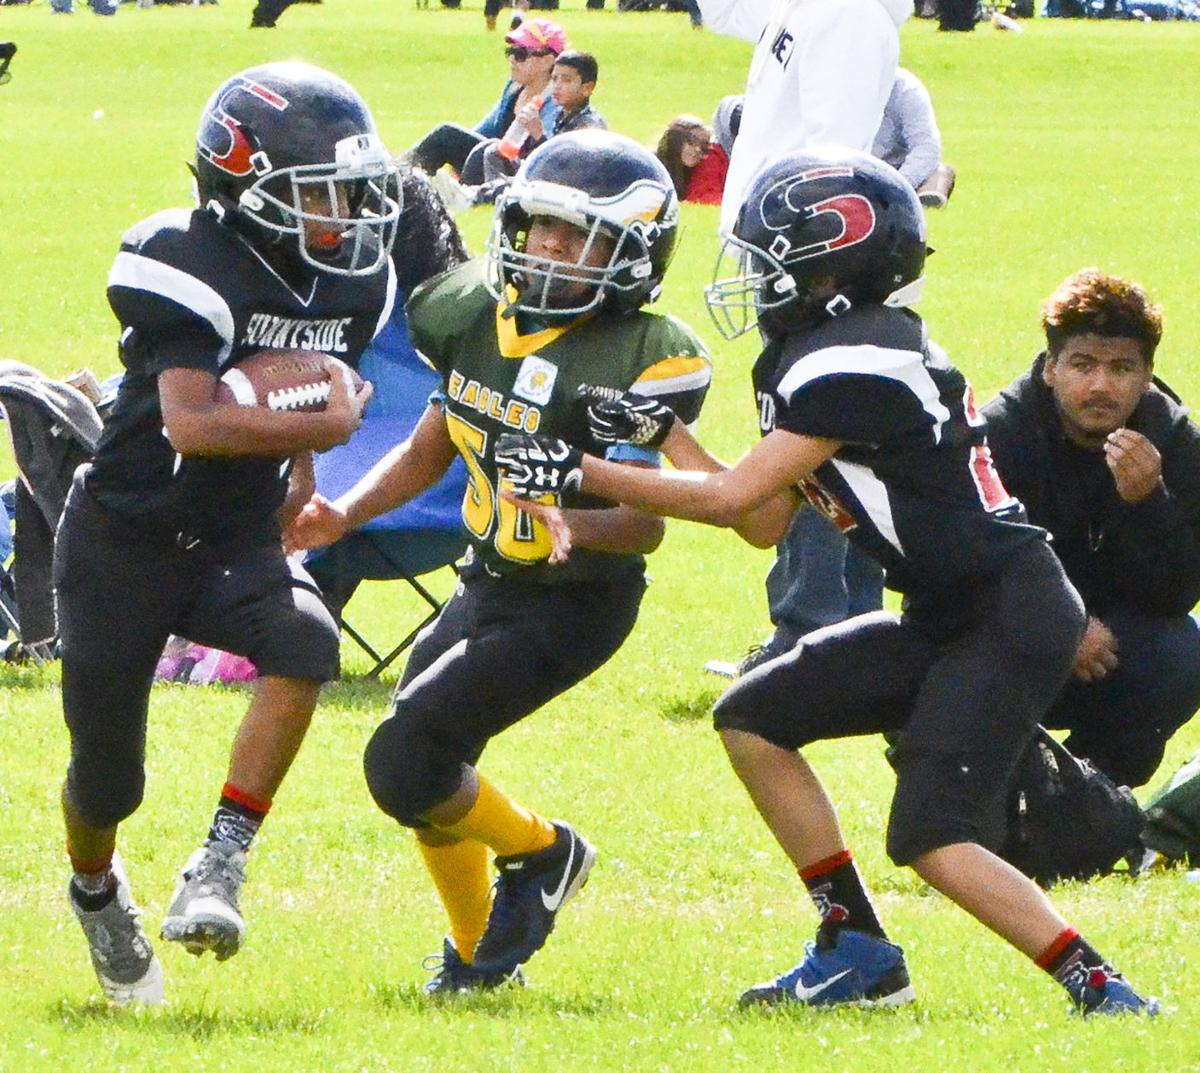 Sunnyside Grid Kids 11 year olds remain undefeated